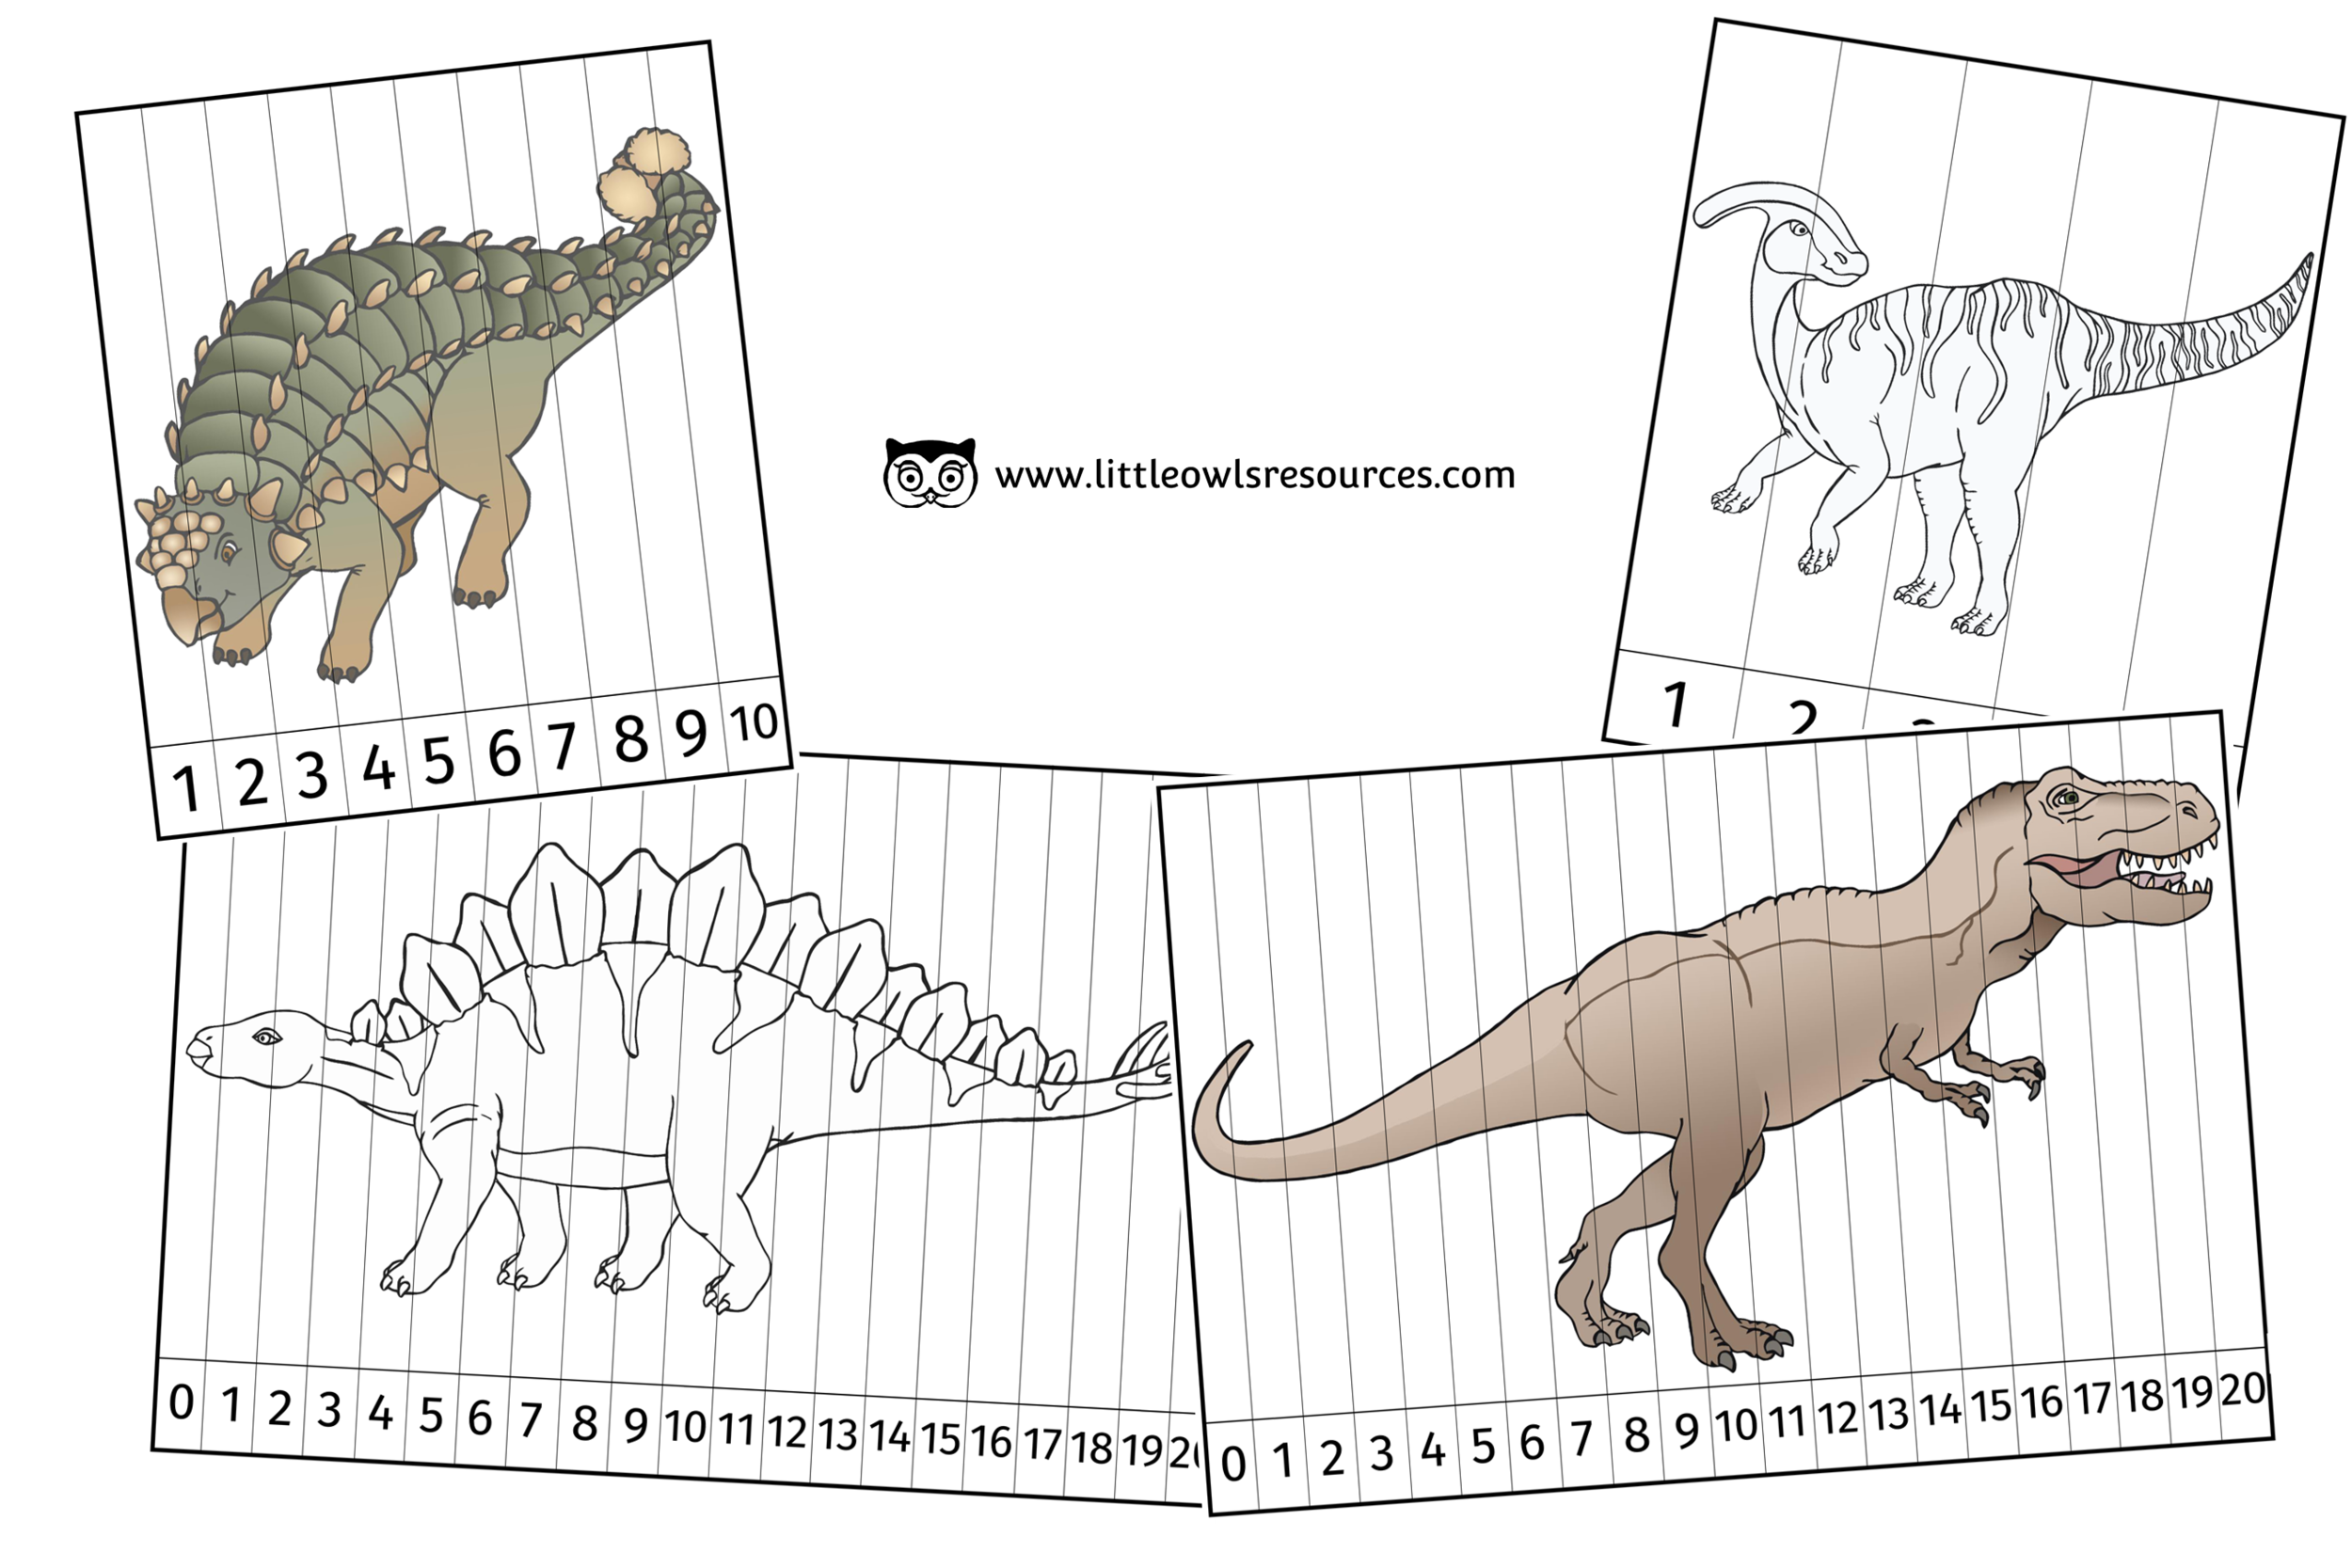 DINOSAUR NUMBER SLICE PUZZLE PICTURES (1-5, 1-10 & 0-20) FULL COLOUR AND COLOURING VERSIONS